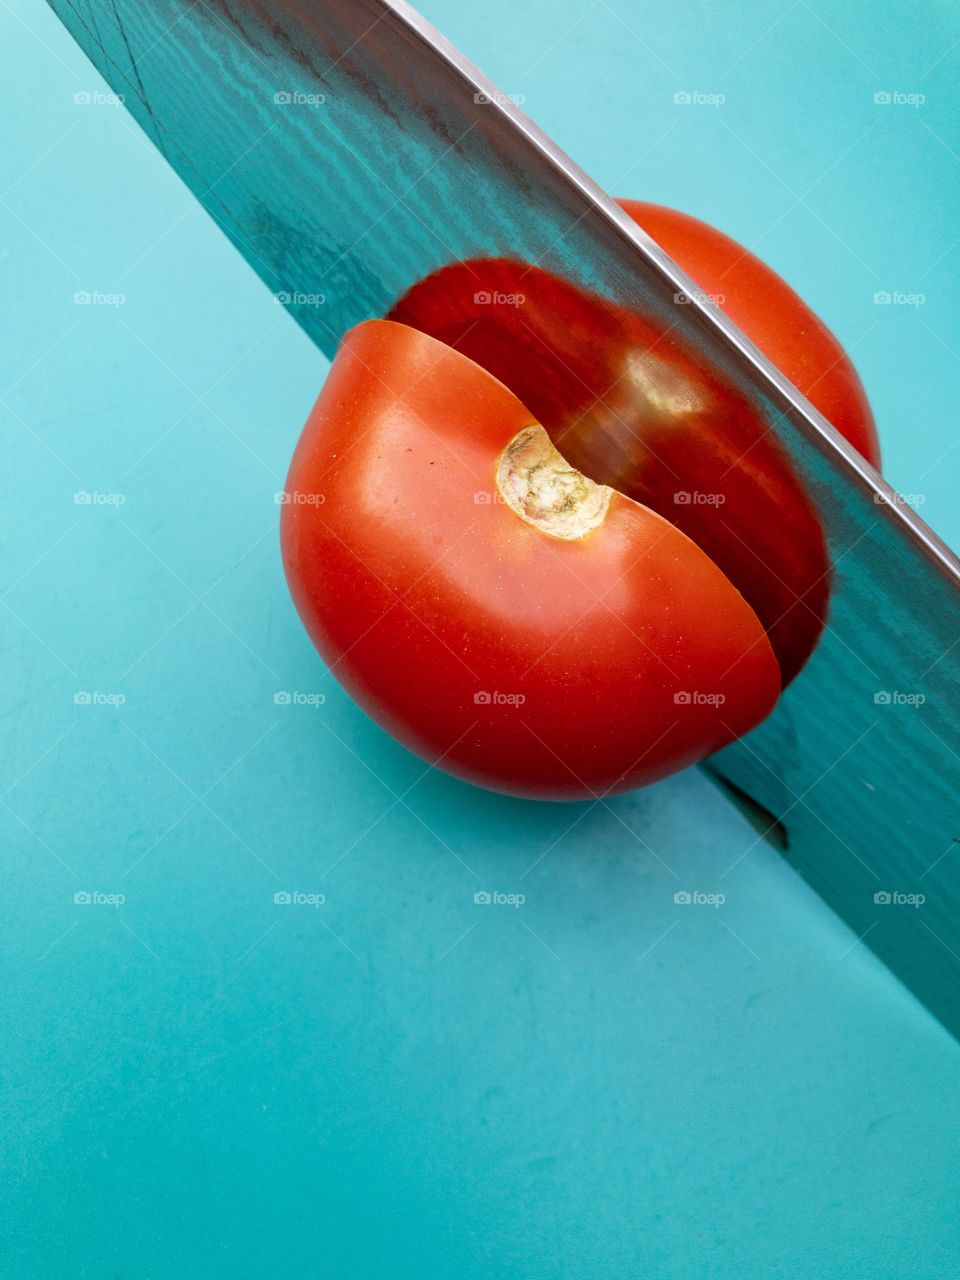 Tomatoe and knife / Tomate und Messer